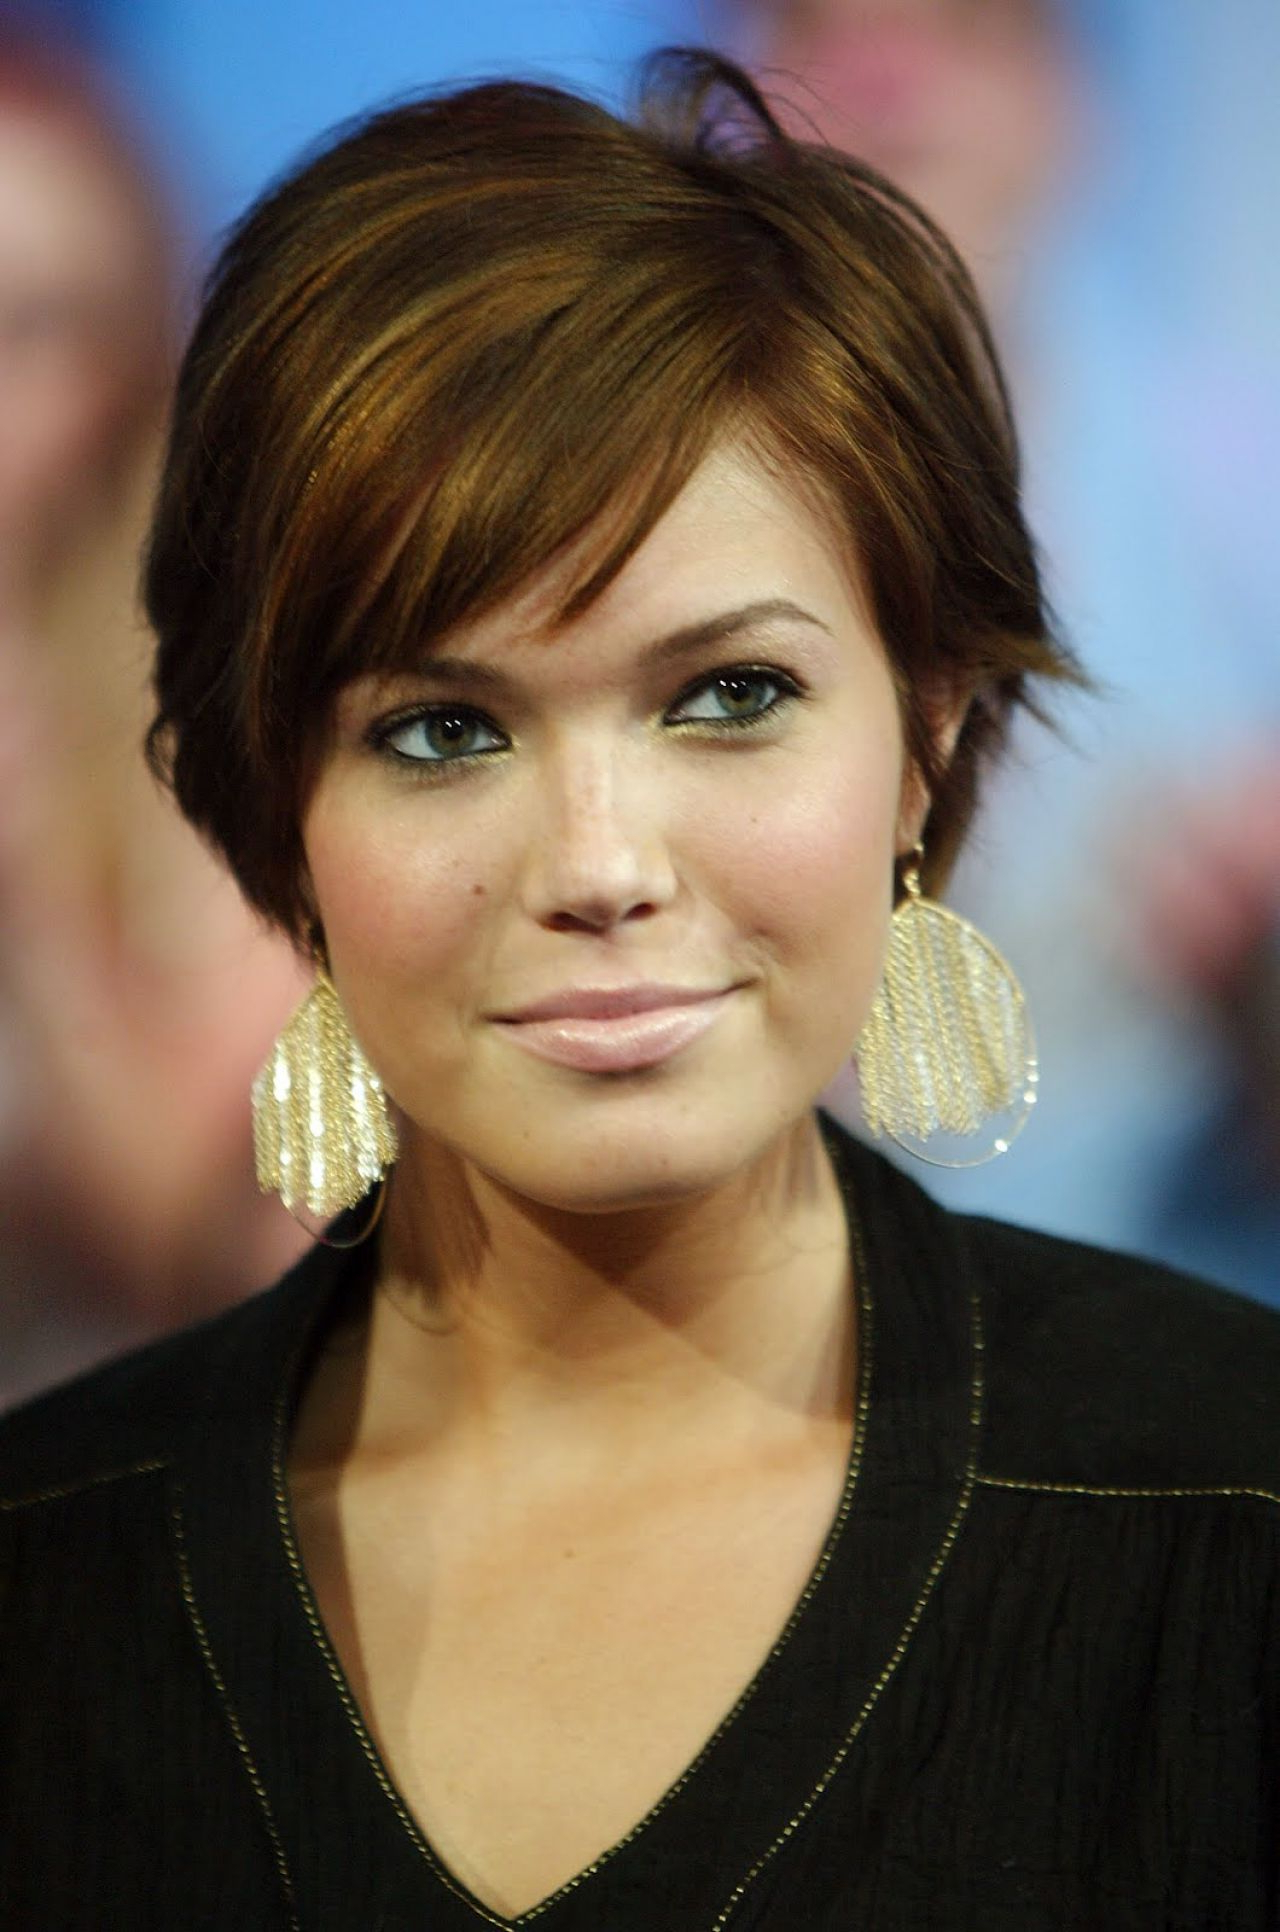 Short Hairstyles For Square Faces Female – Google Search In Short Haircuts For Square Face (View 5 of 25)